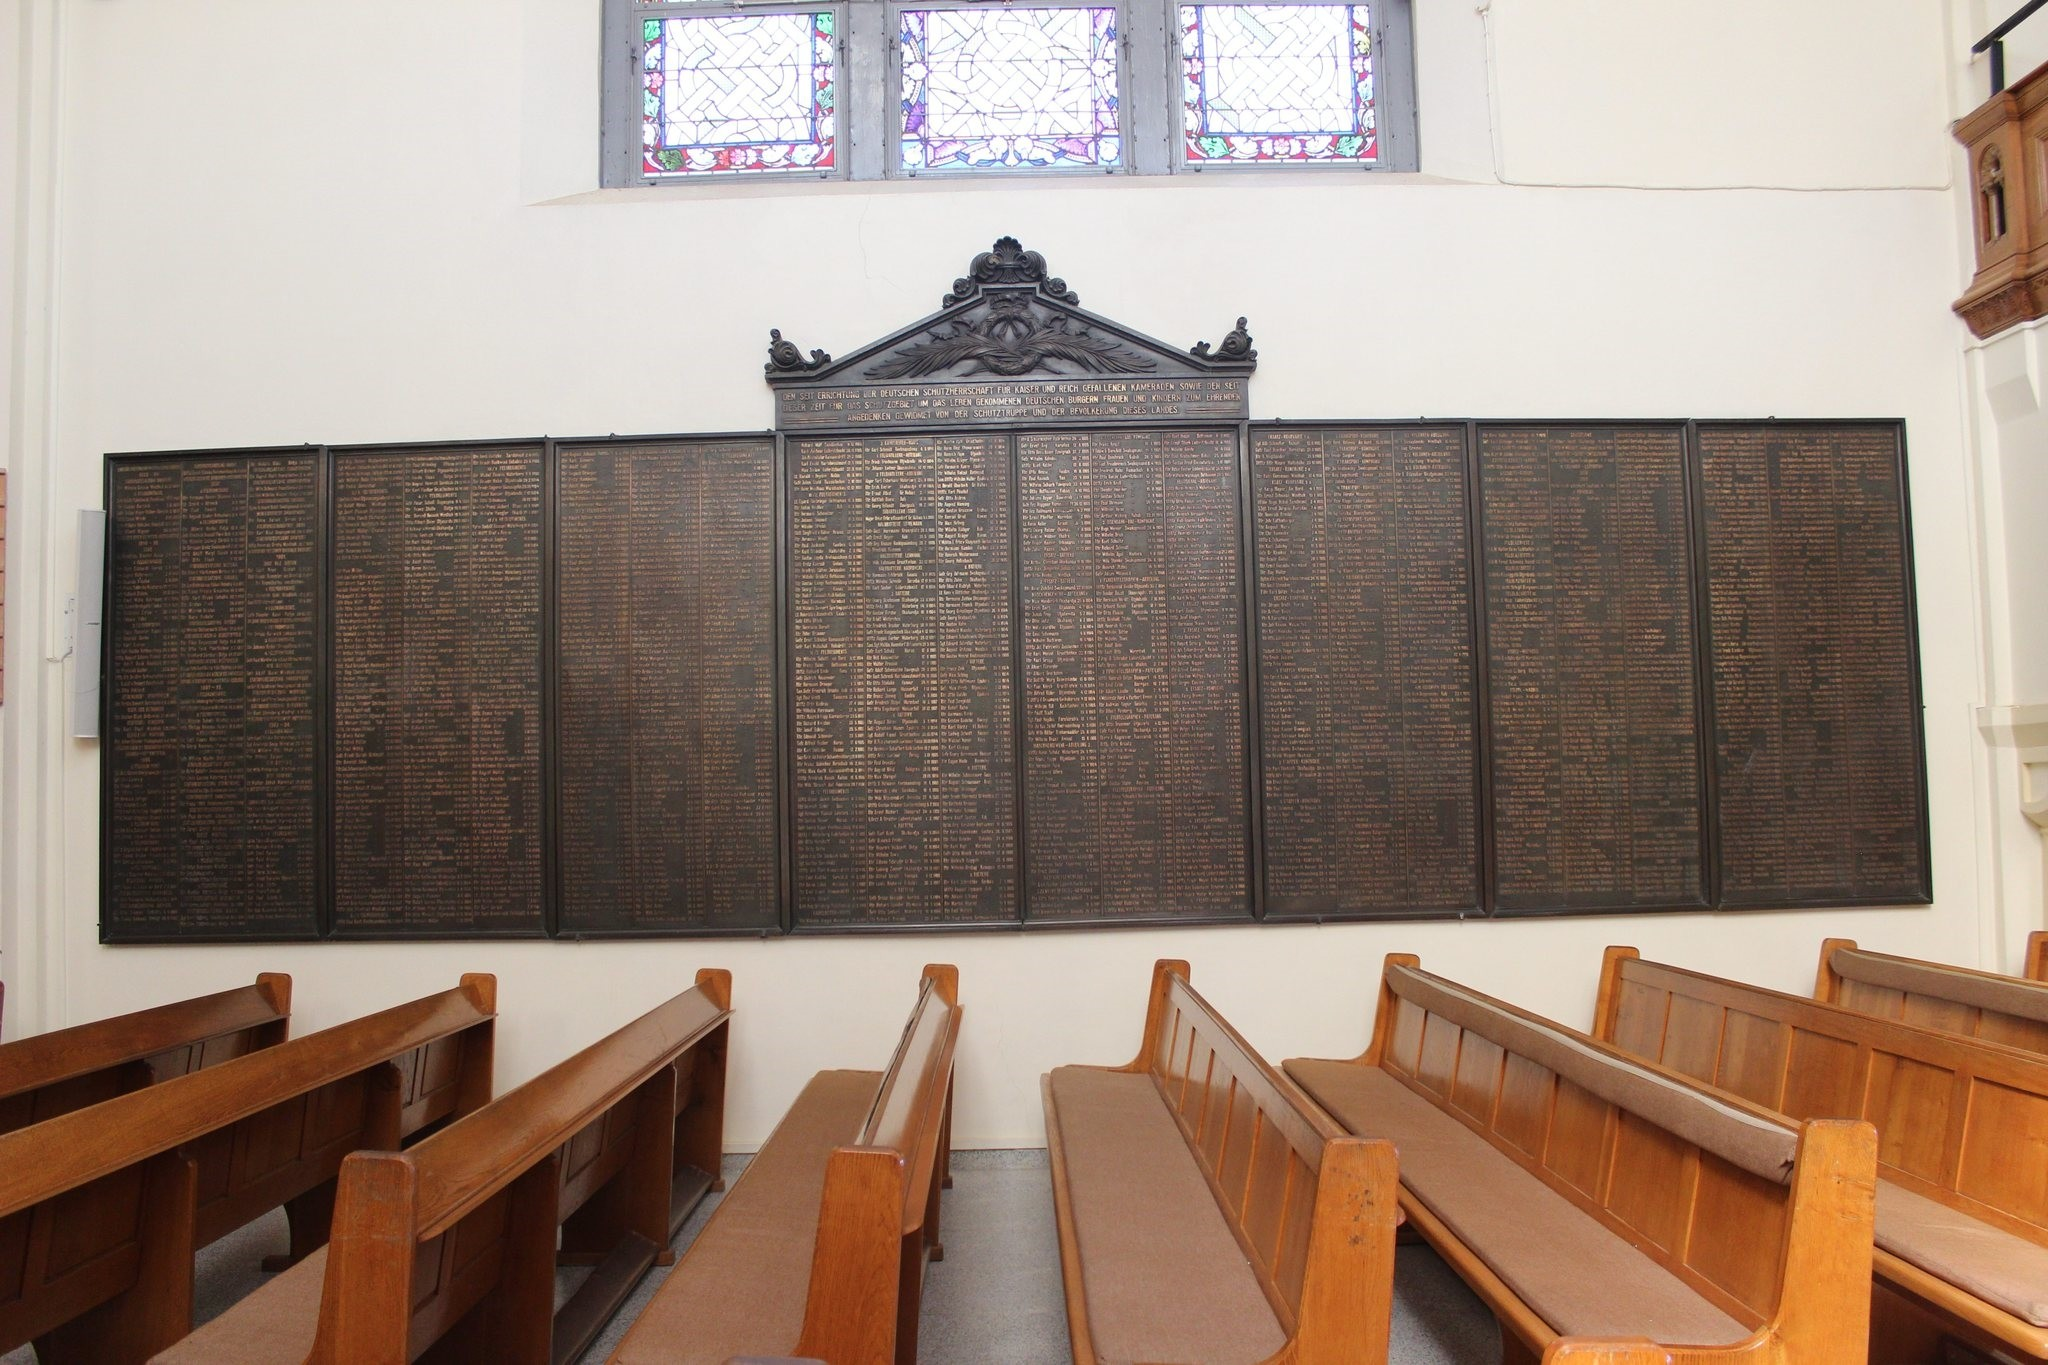 On the wall of Christ Church in Windhoek's Center, the names of German soldiers are written, who are responsible for killing thousands.